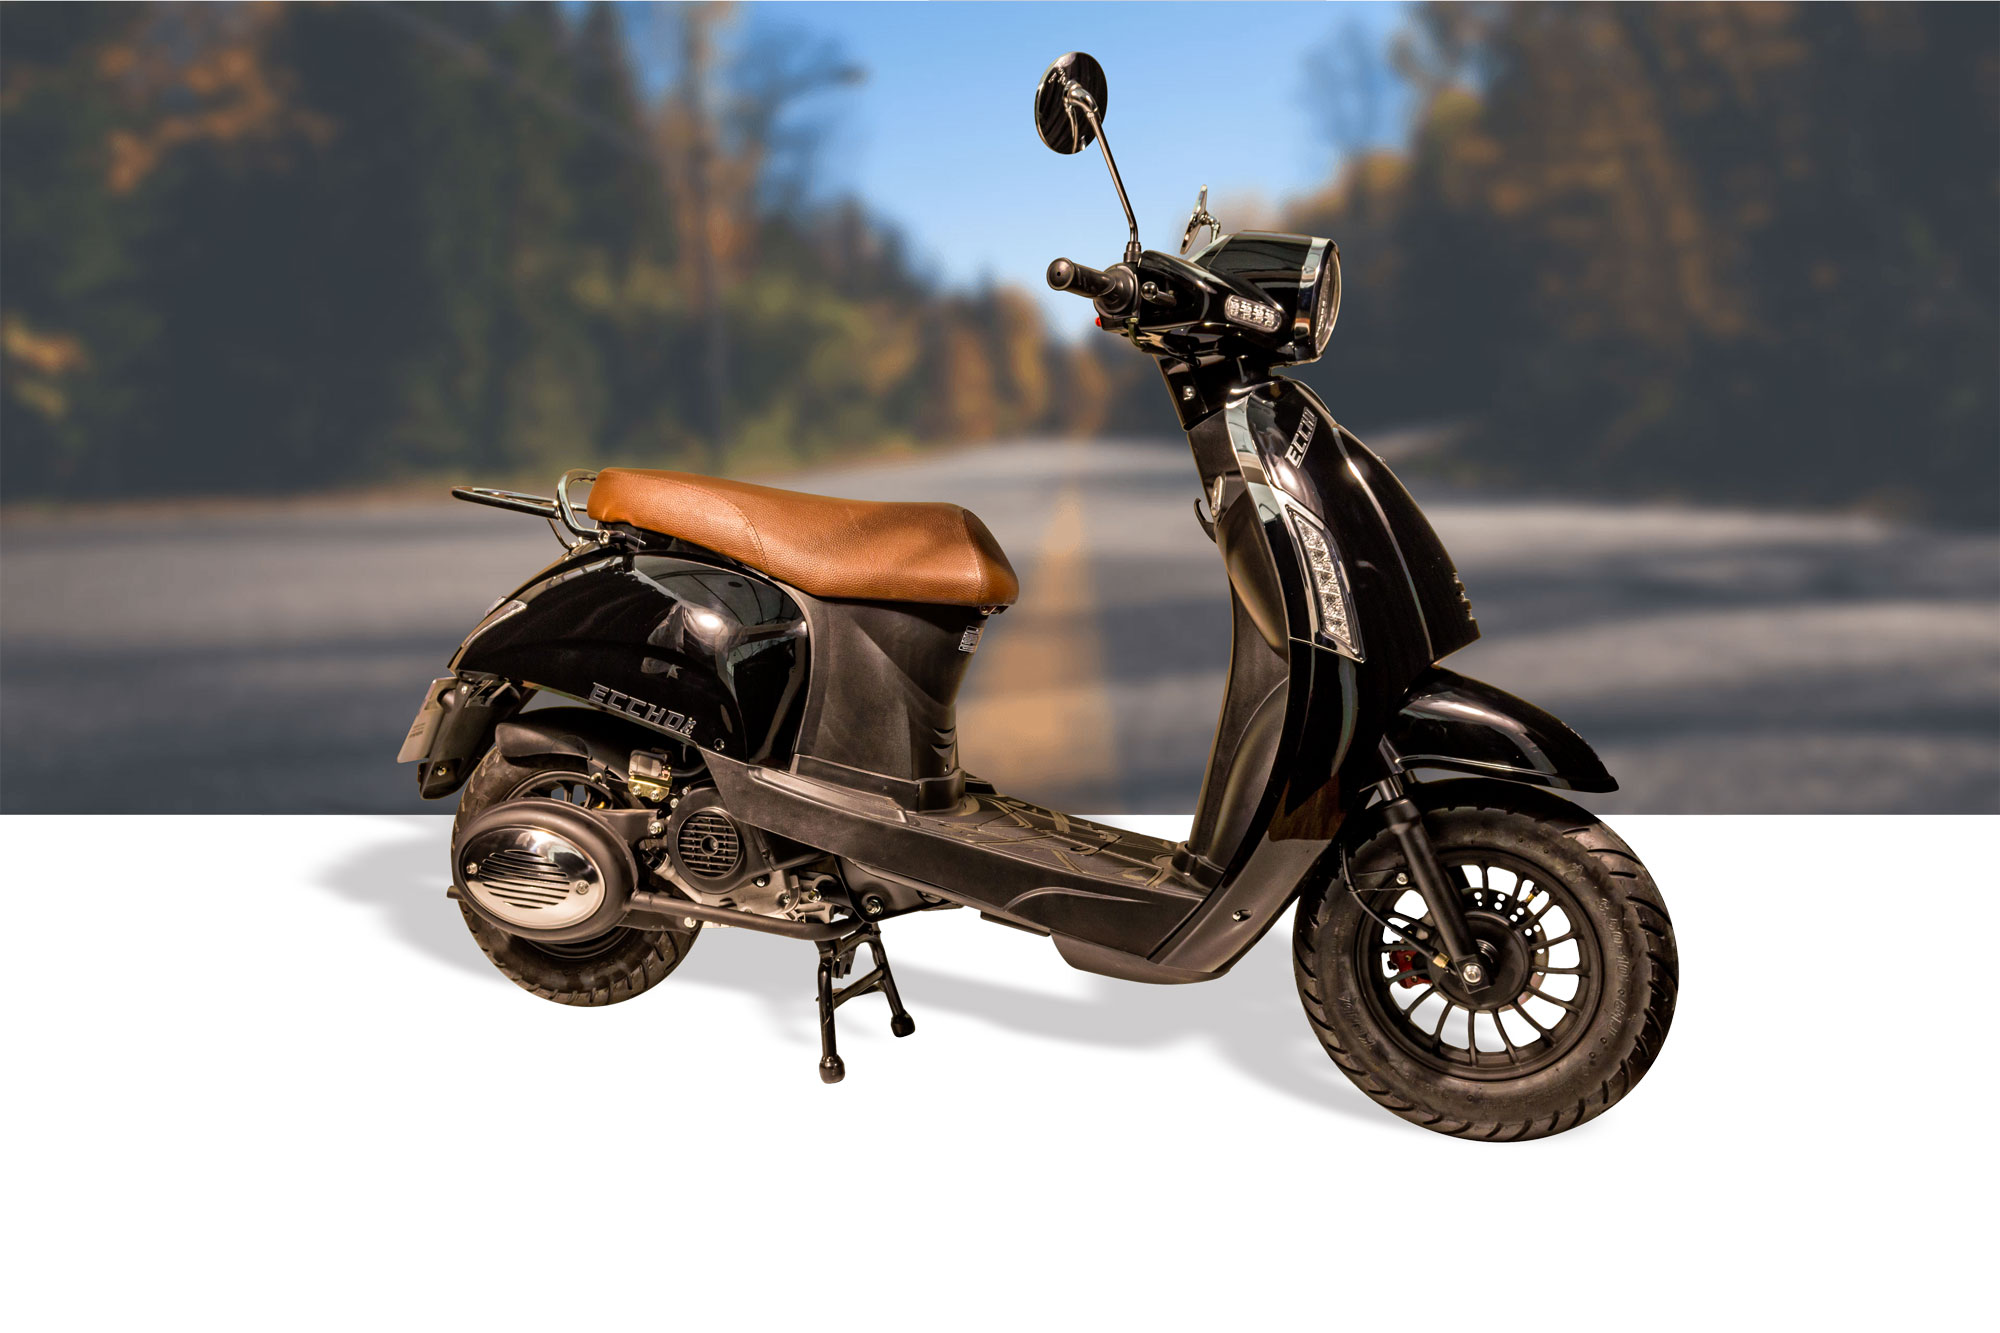 SCOOTER-50-ECCHO-NEW-CITY-EFI-02